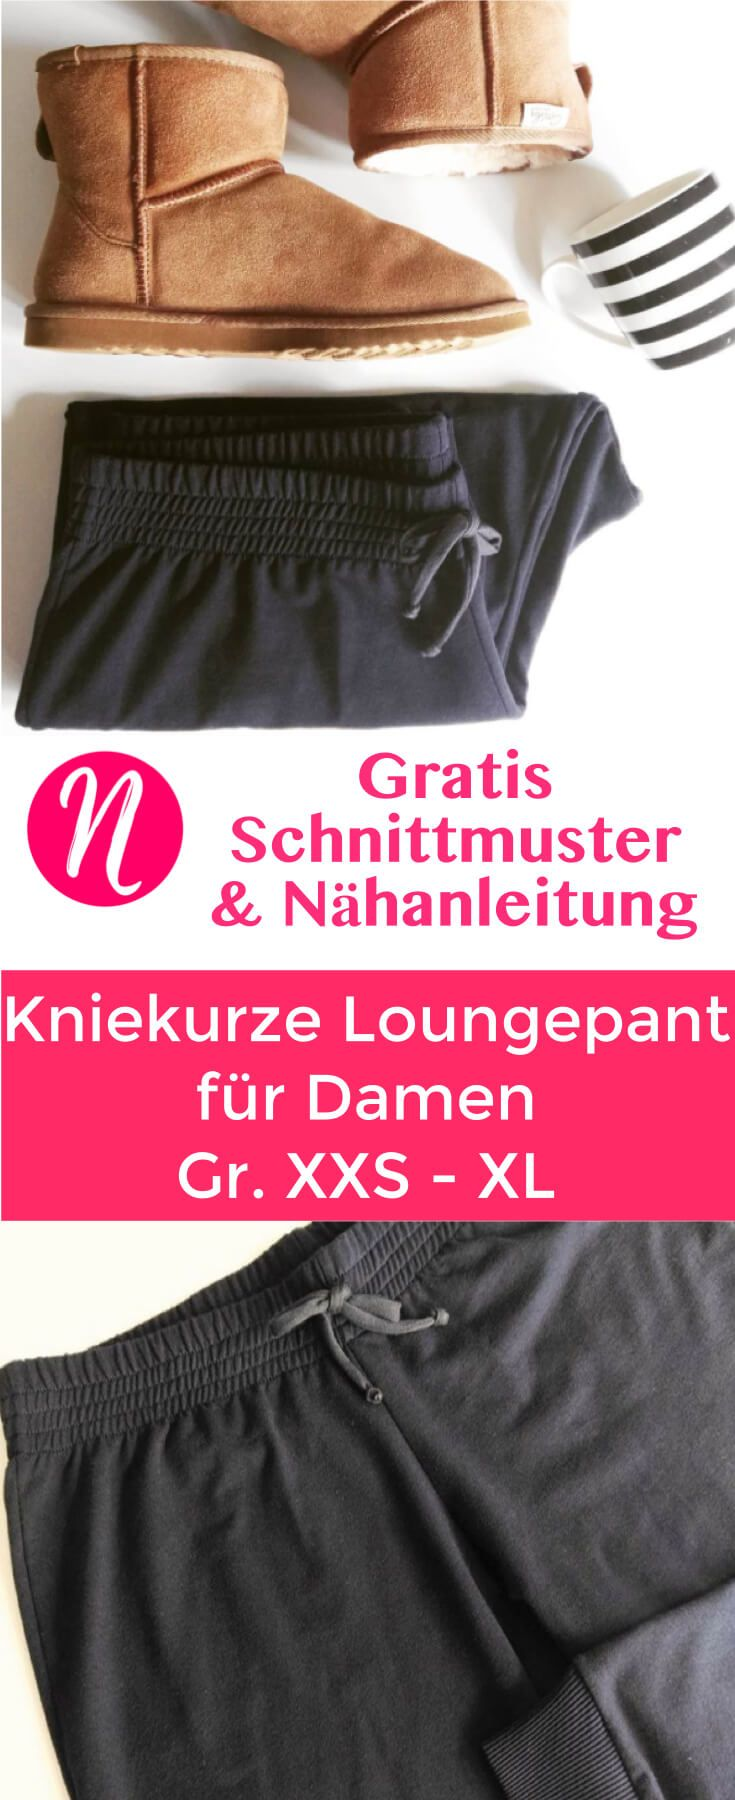 Kurze Jogginghose für Damen bis zum Knie ❤ Kostenloses Schnittmuster zum Ausdrucken ❤ bequem & lässig ❤ für Strickstoffe ❤ XXS-XL ❤ ✂ Nähtalente.de ❤ Short Lounge Pant for Woman ❤ Free PDF-Sewing Pattern ❤ very comfortable ❤ for knit fabrics ❤ XXS-XL ❤ ✂